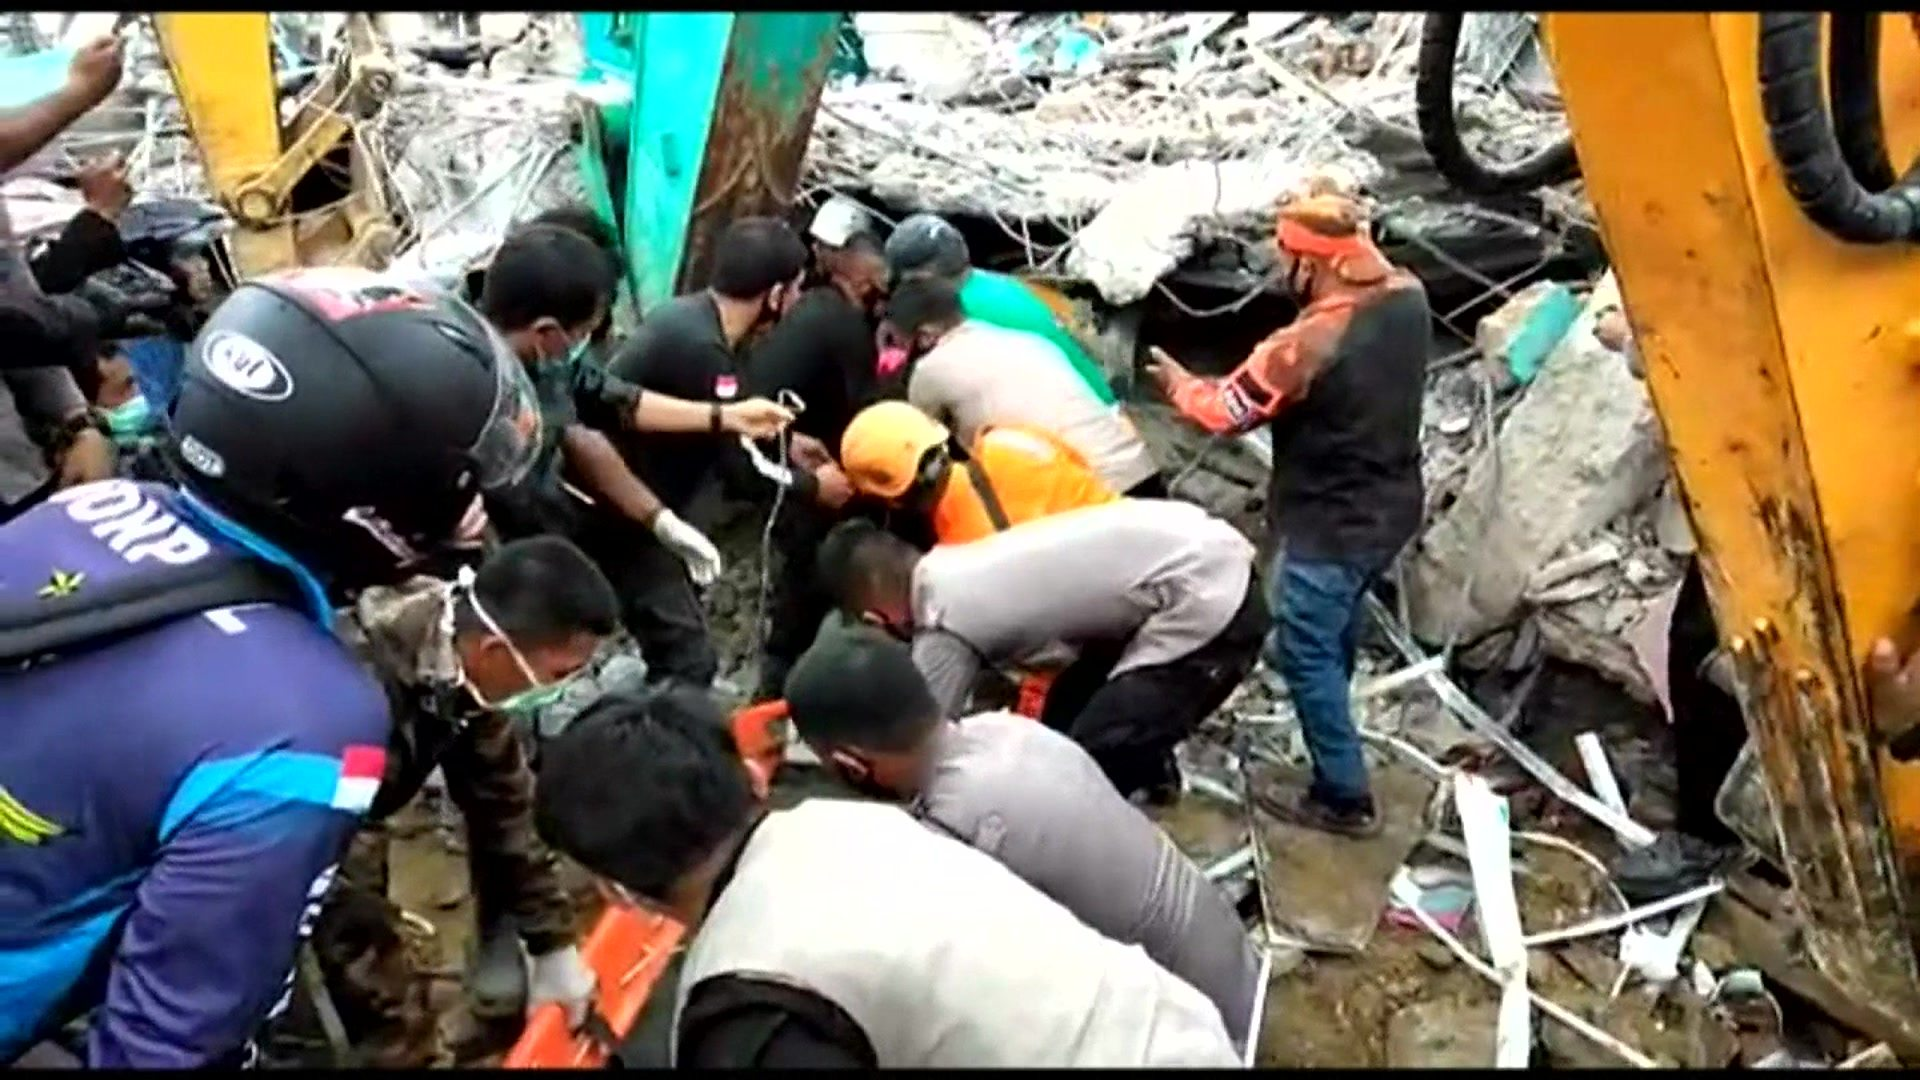 Indonesia earthquake: Dozens dead as search for survivors continues (2021)